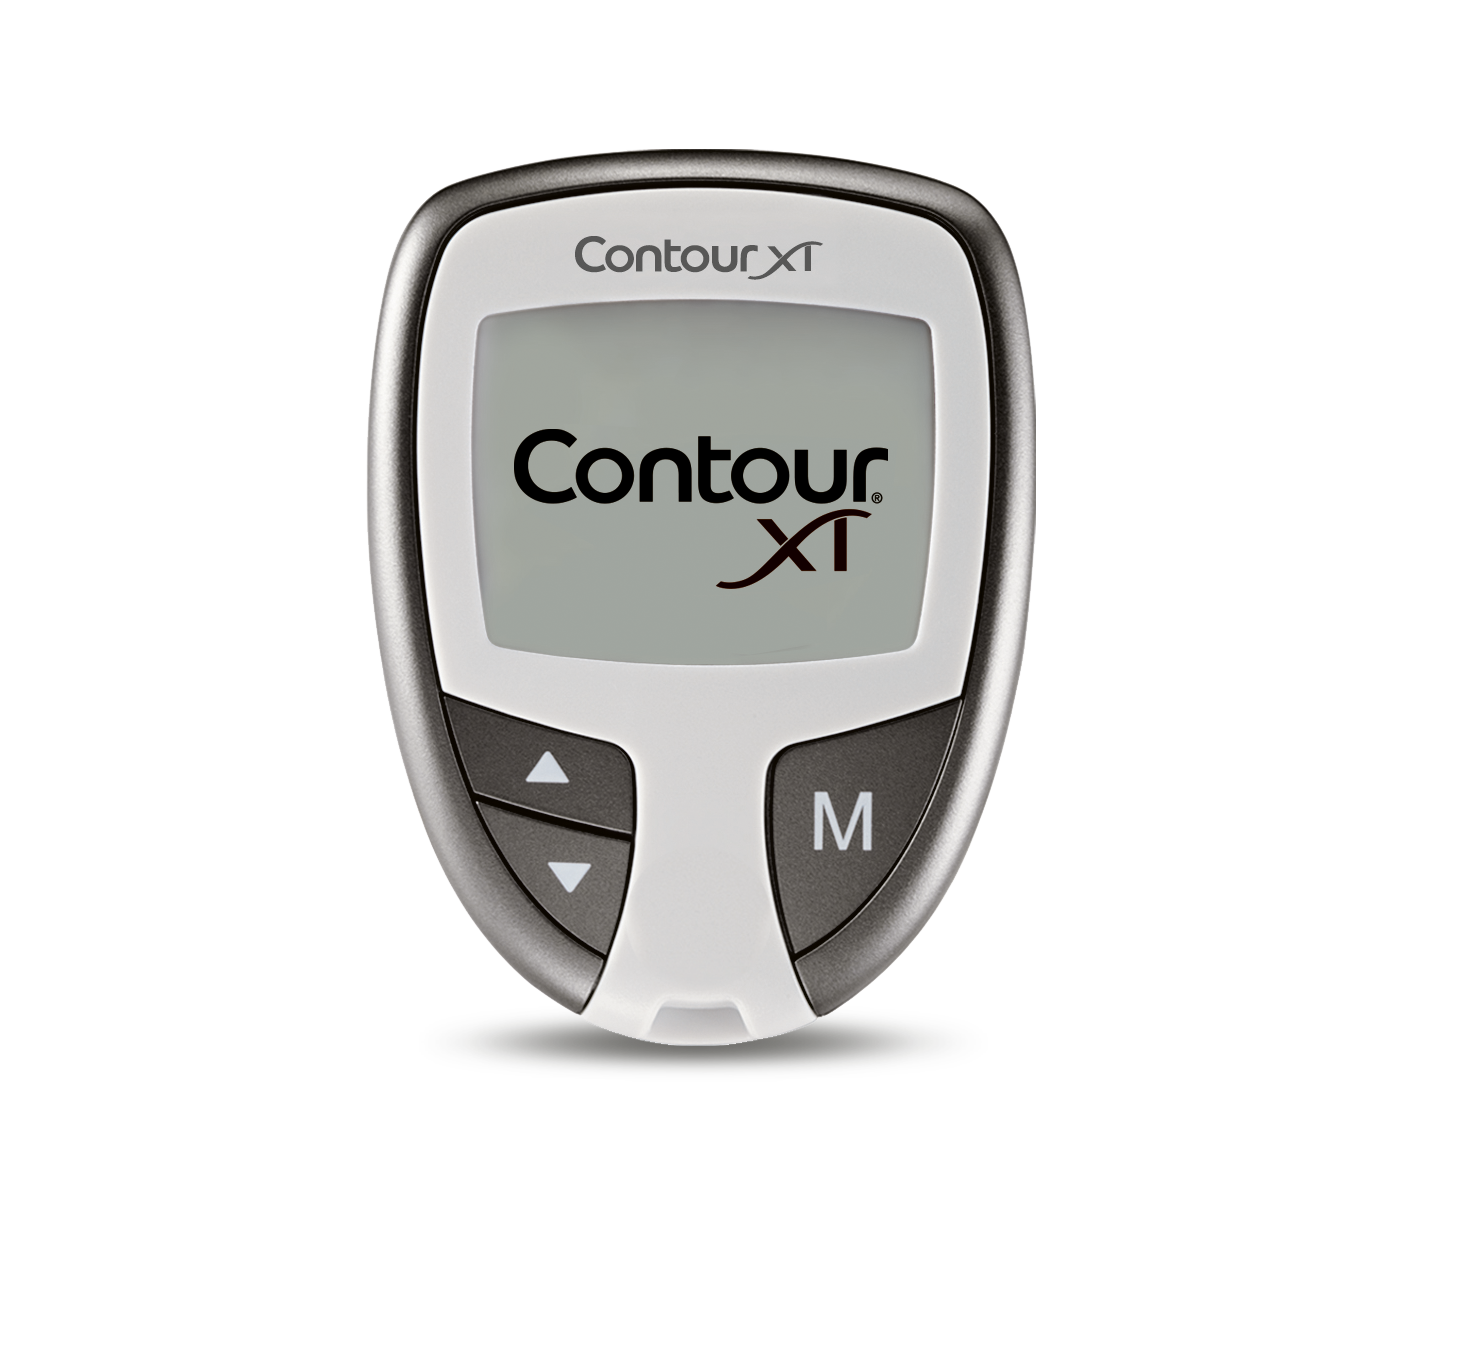 Contour XT meter with no result